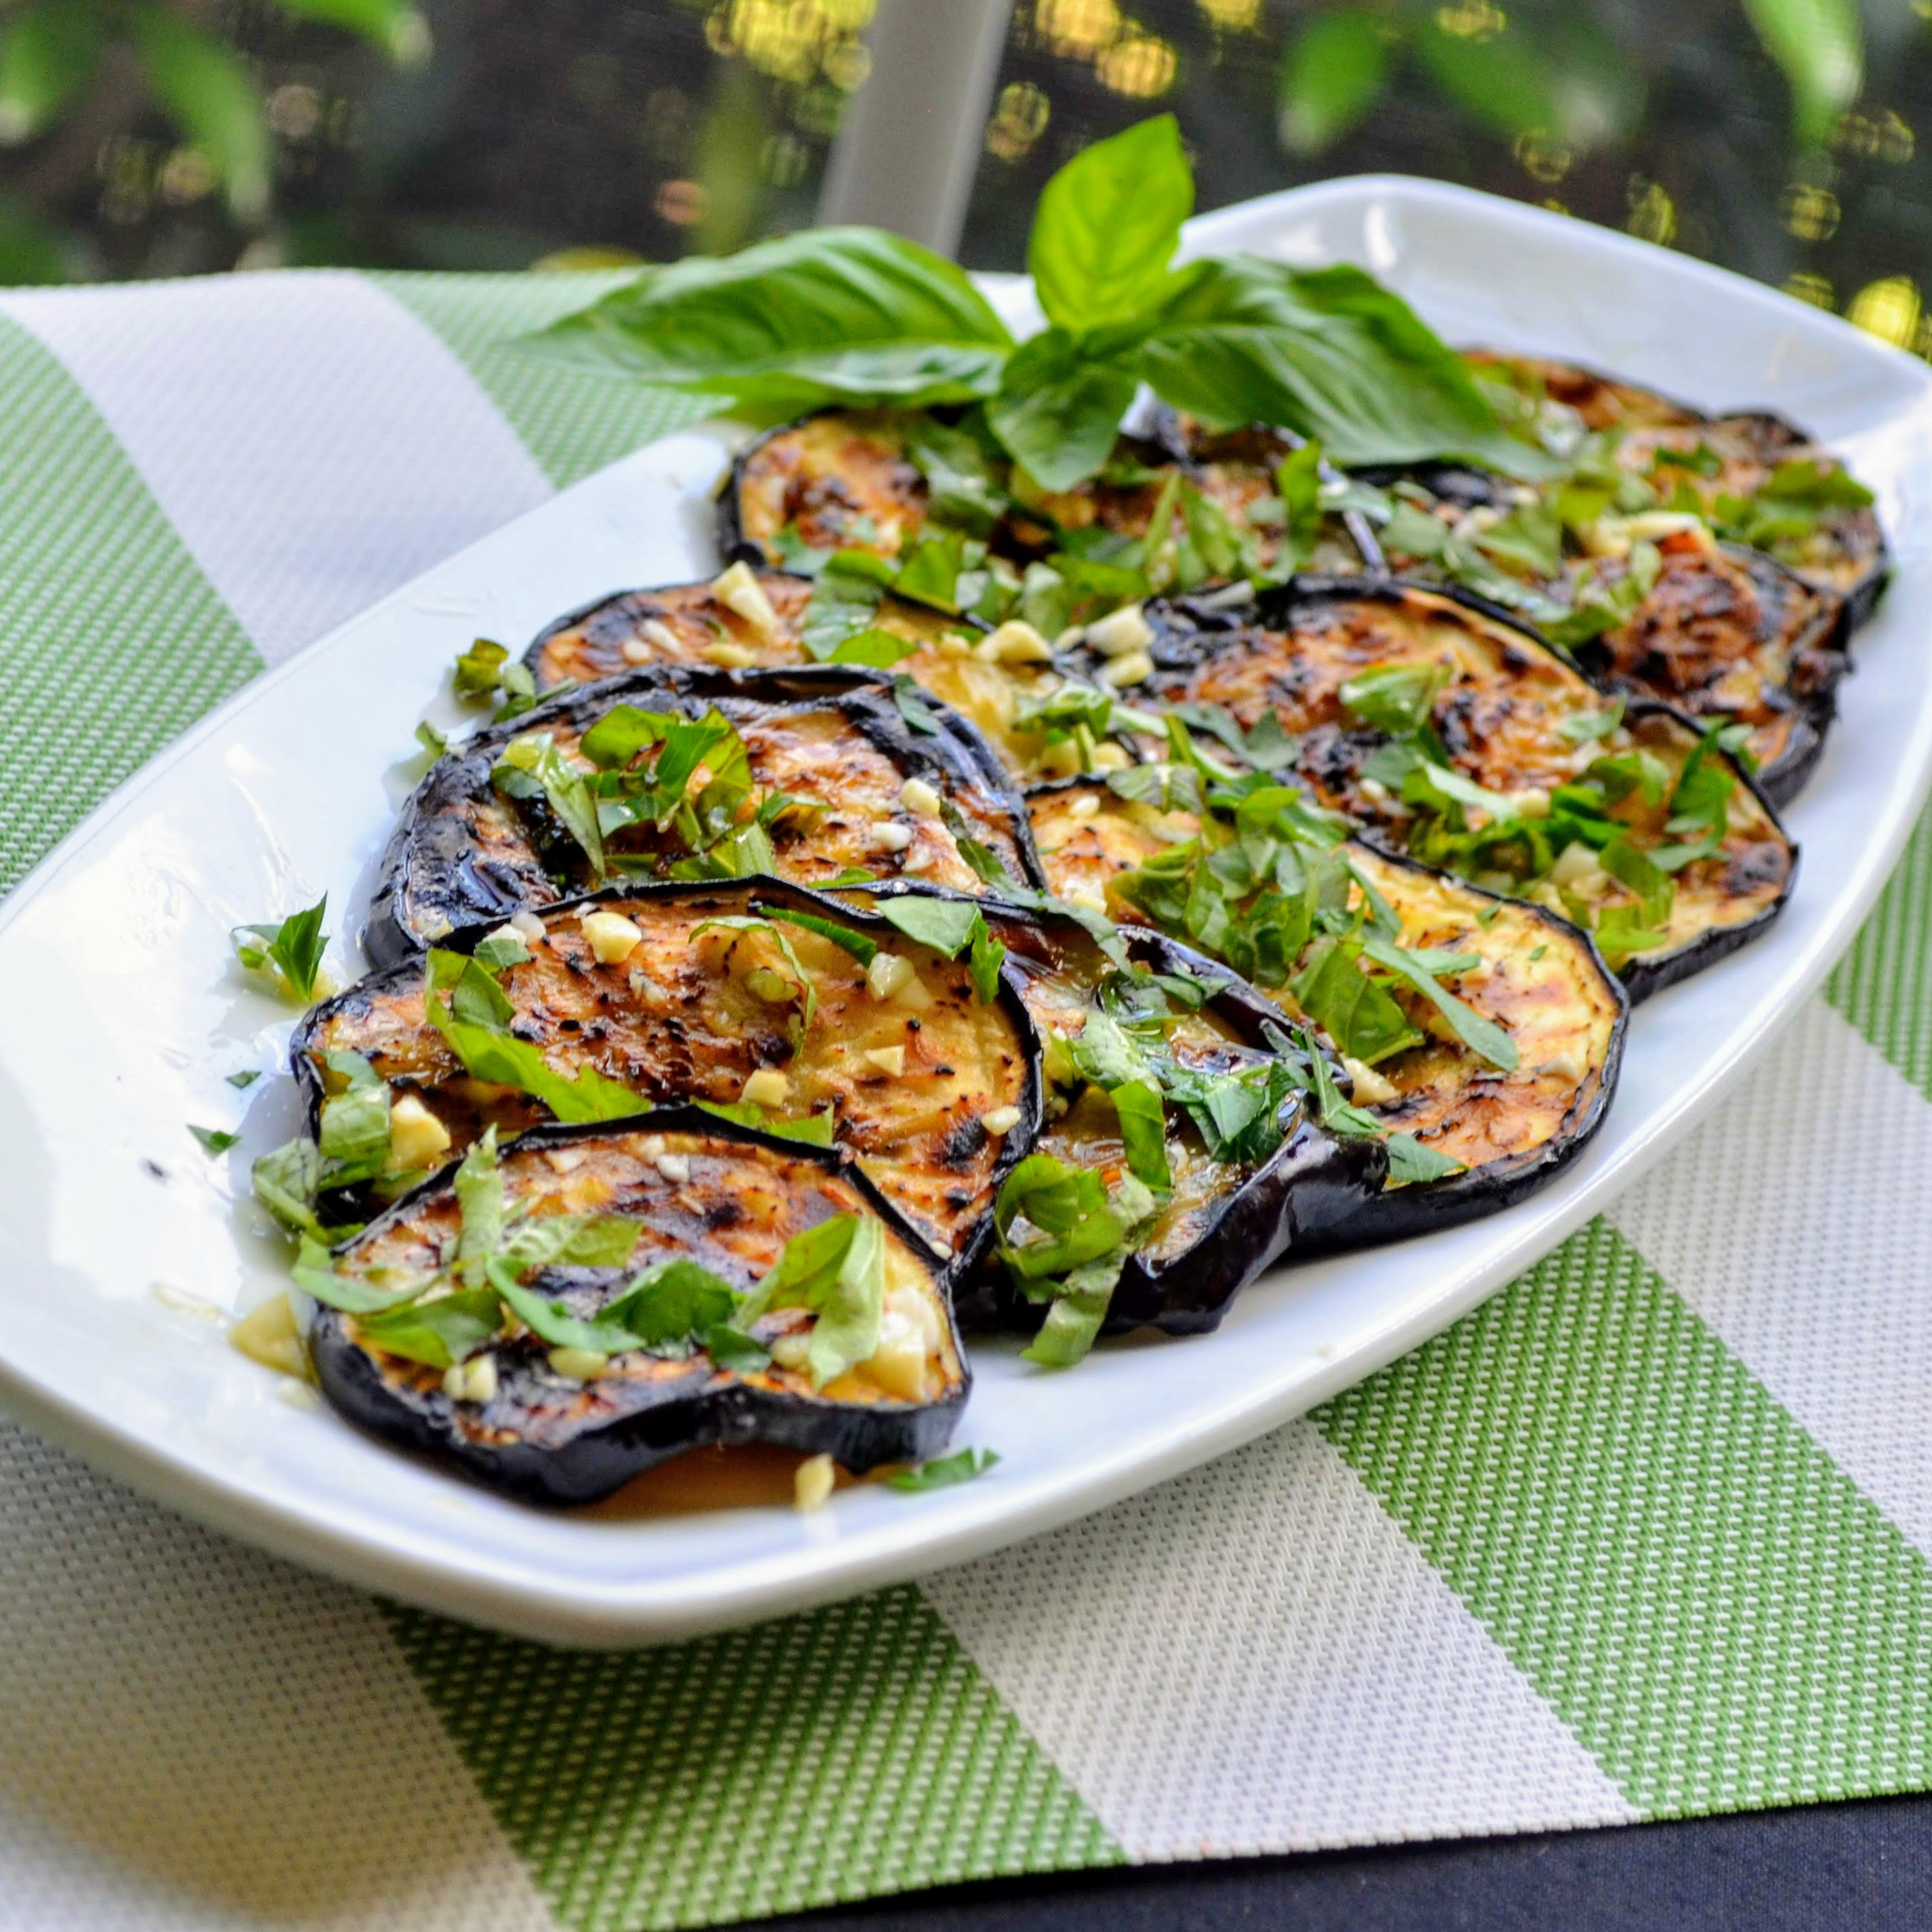 Italian Grilled Eggplant with Basil and Parsley (Melanzane Grigliate al Basilico e Prezzemolo)